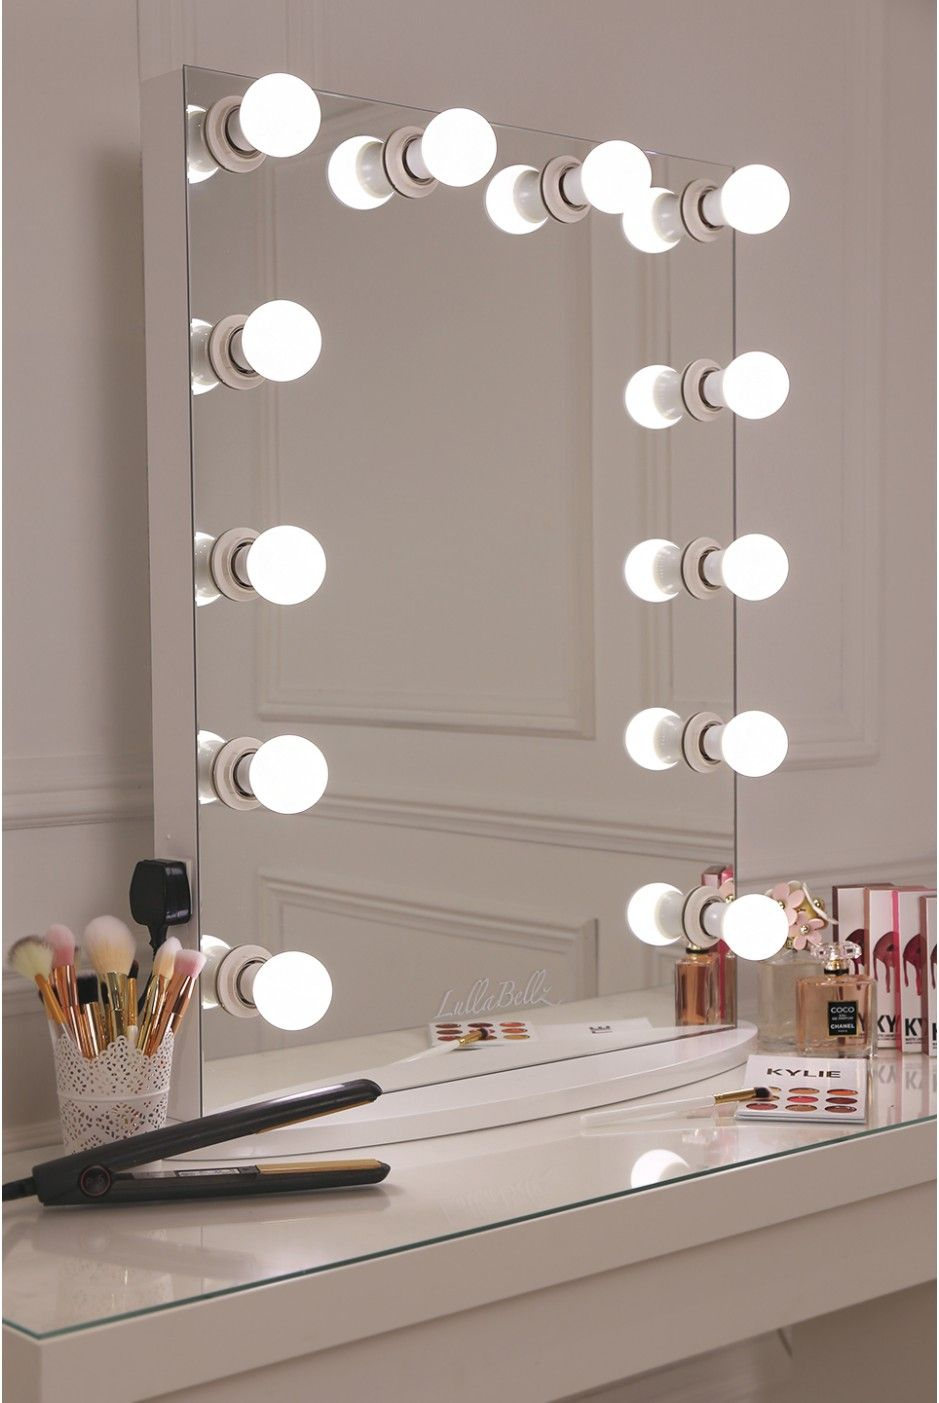 Vanity Girl Hollywood Light Up Mirror : LULLABELLZ Hollywood Glow Vanity Mirror LED Bulbs. This is what make up dreams are made of girls ...